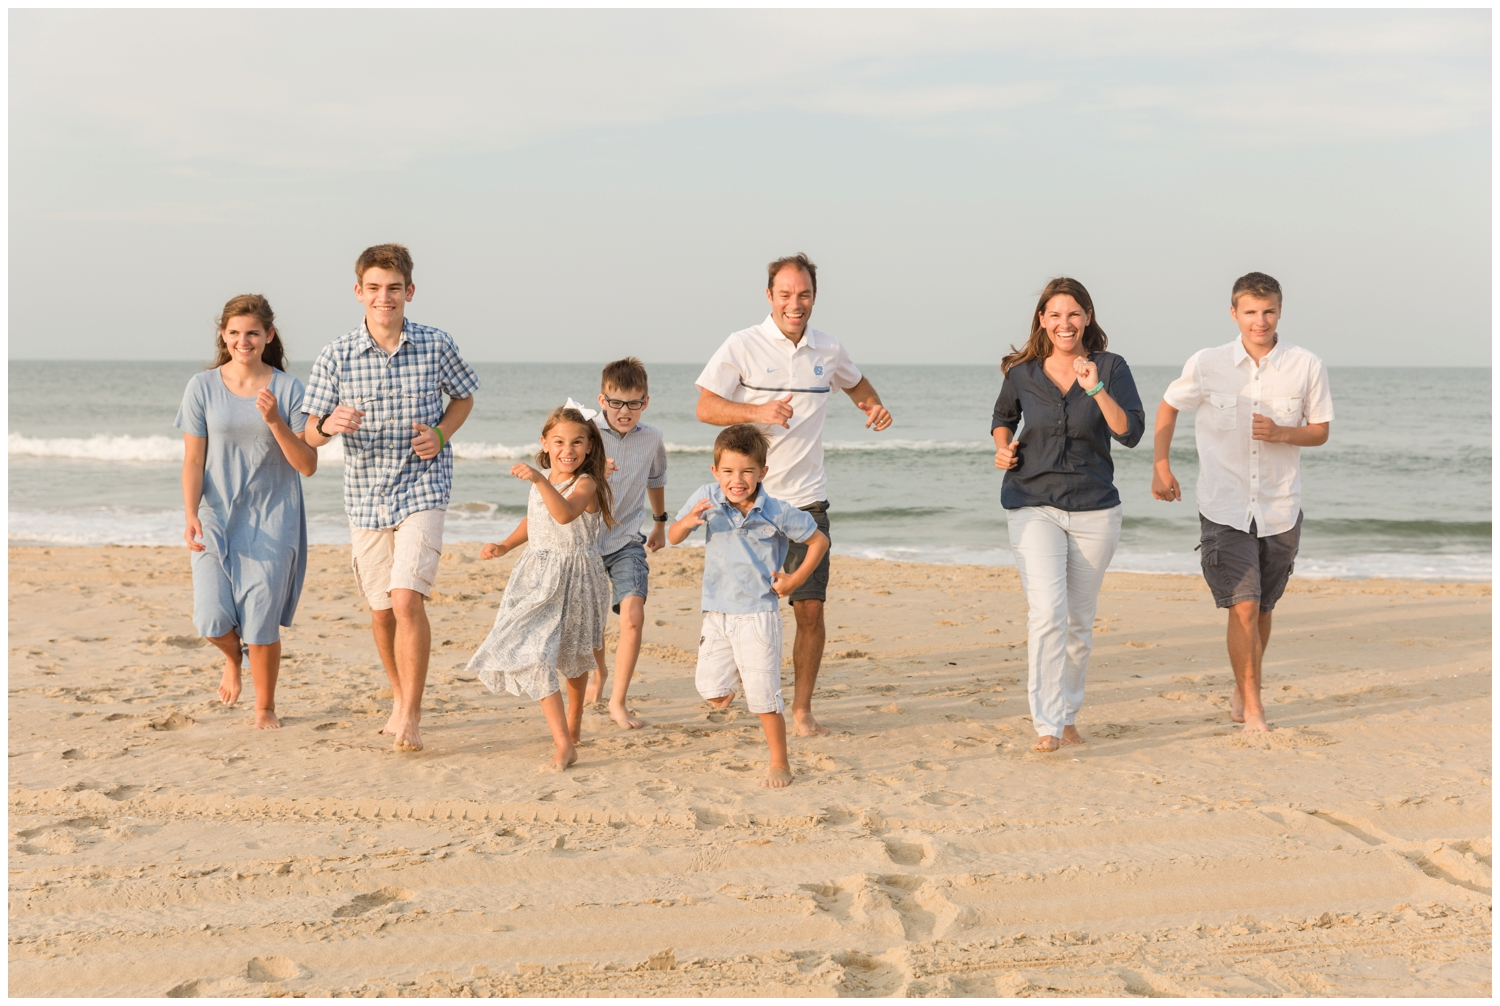 elovephotos virginia beach sandbridge family photographer_0897.jpg